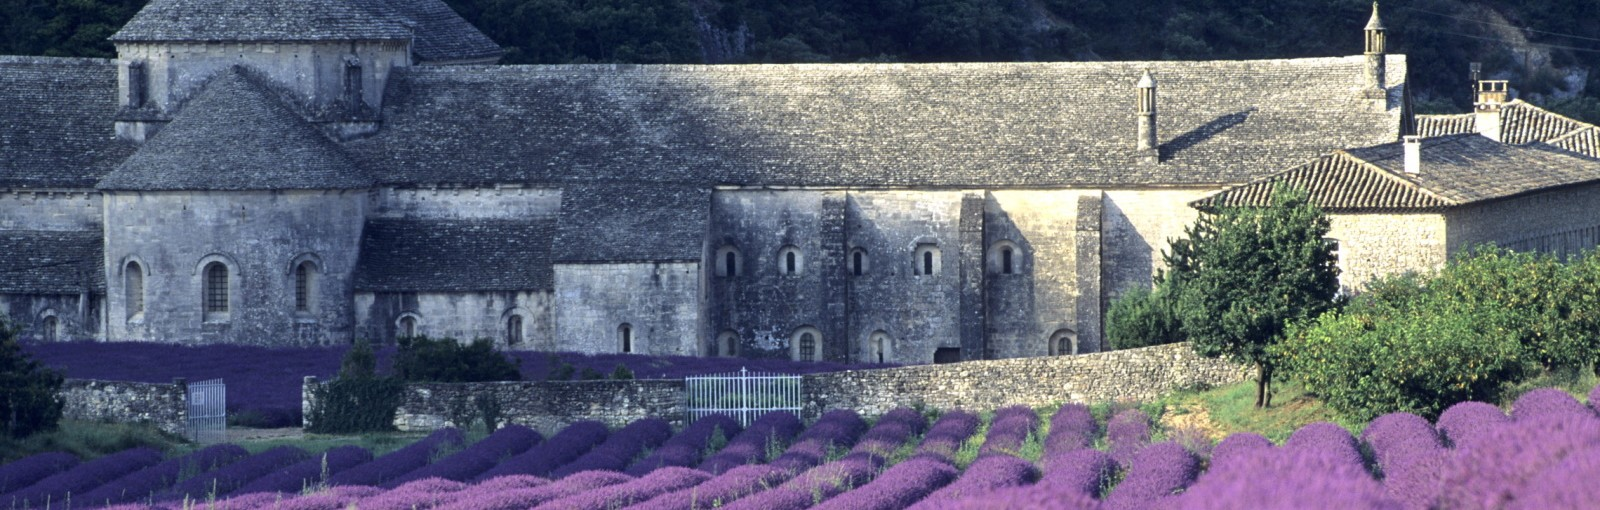 Tours Two days in Provence - Multi-regional - Multiday tours from Paris